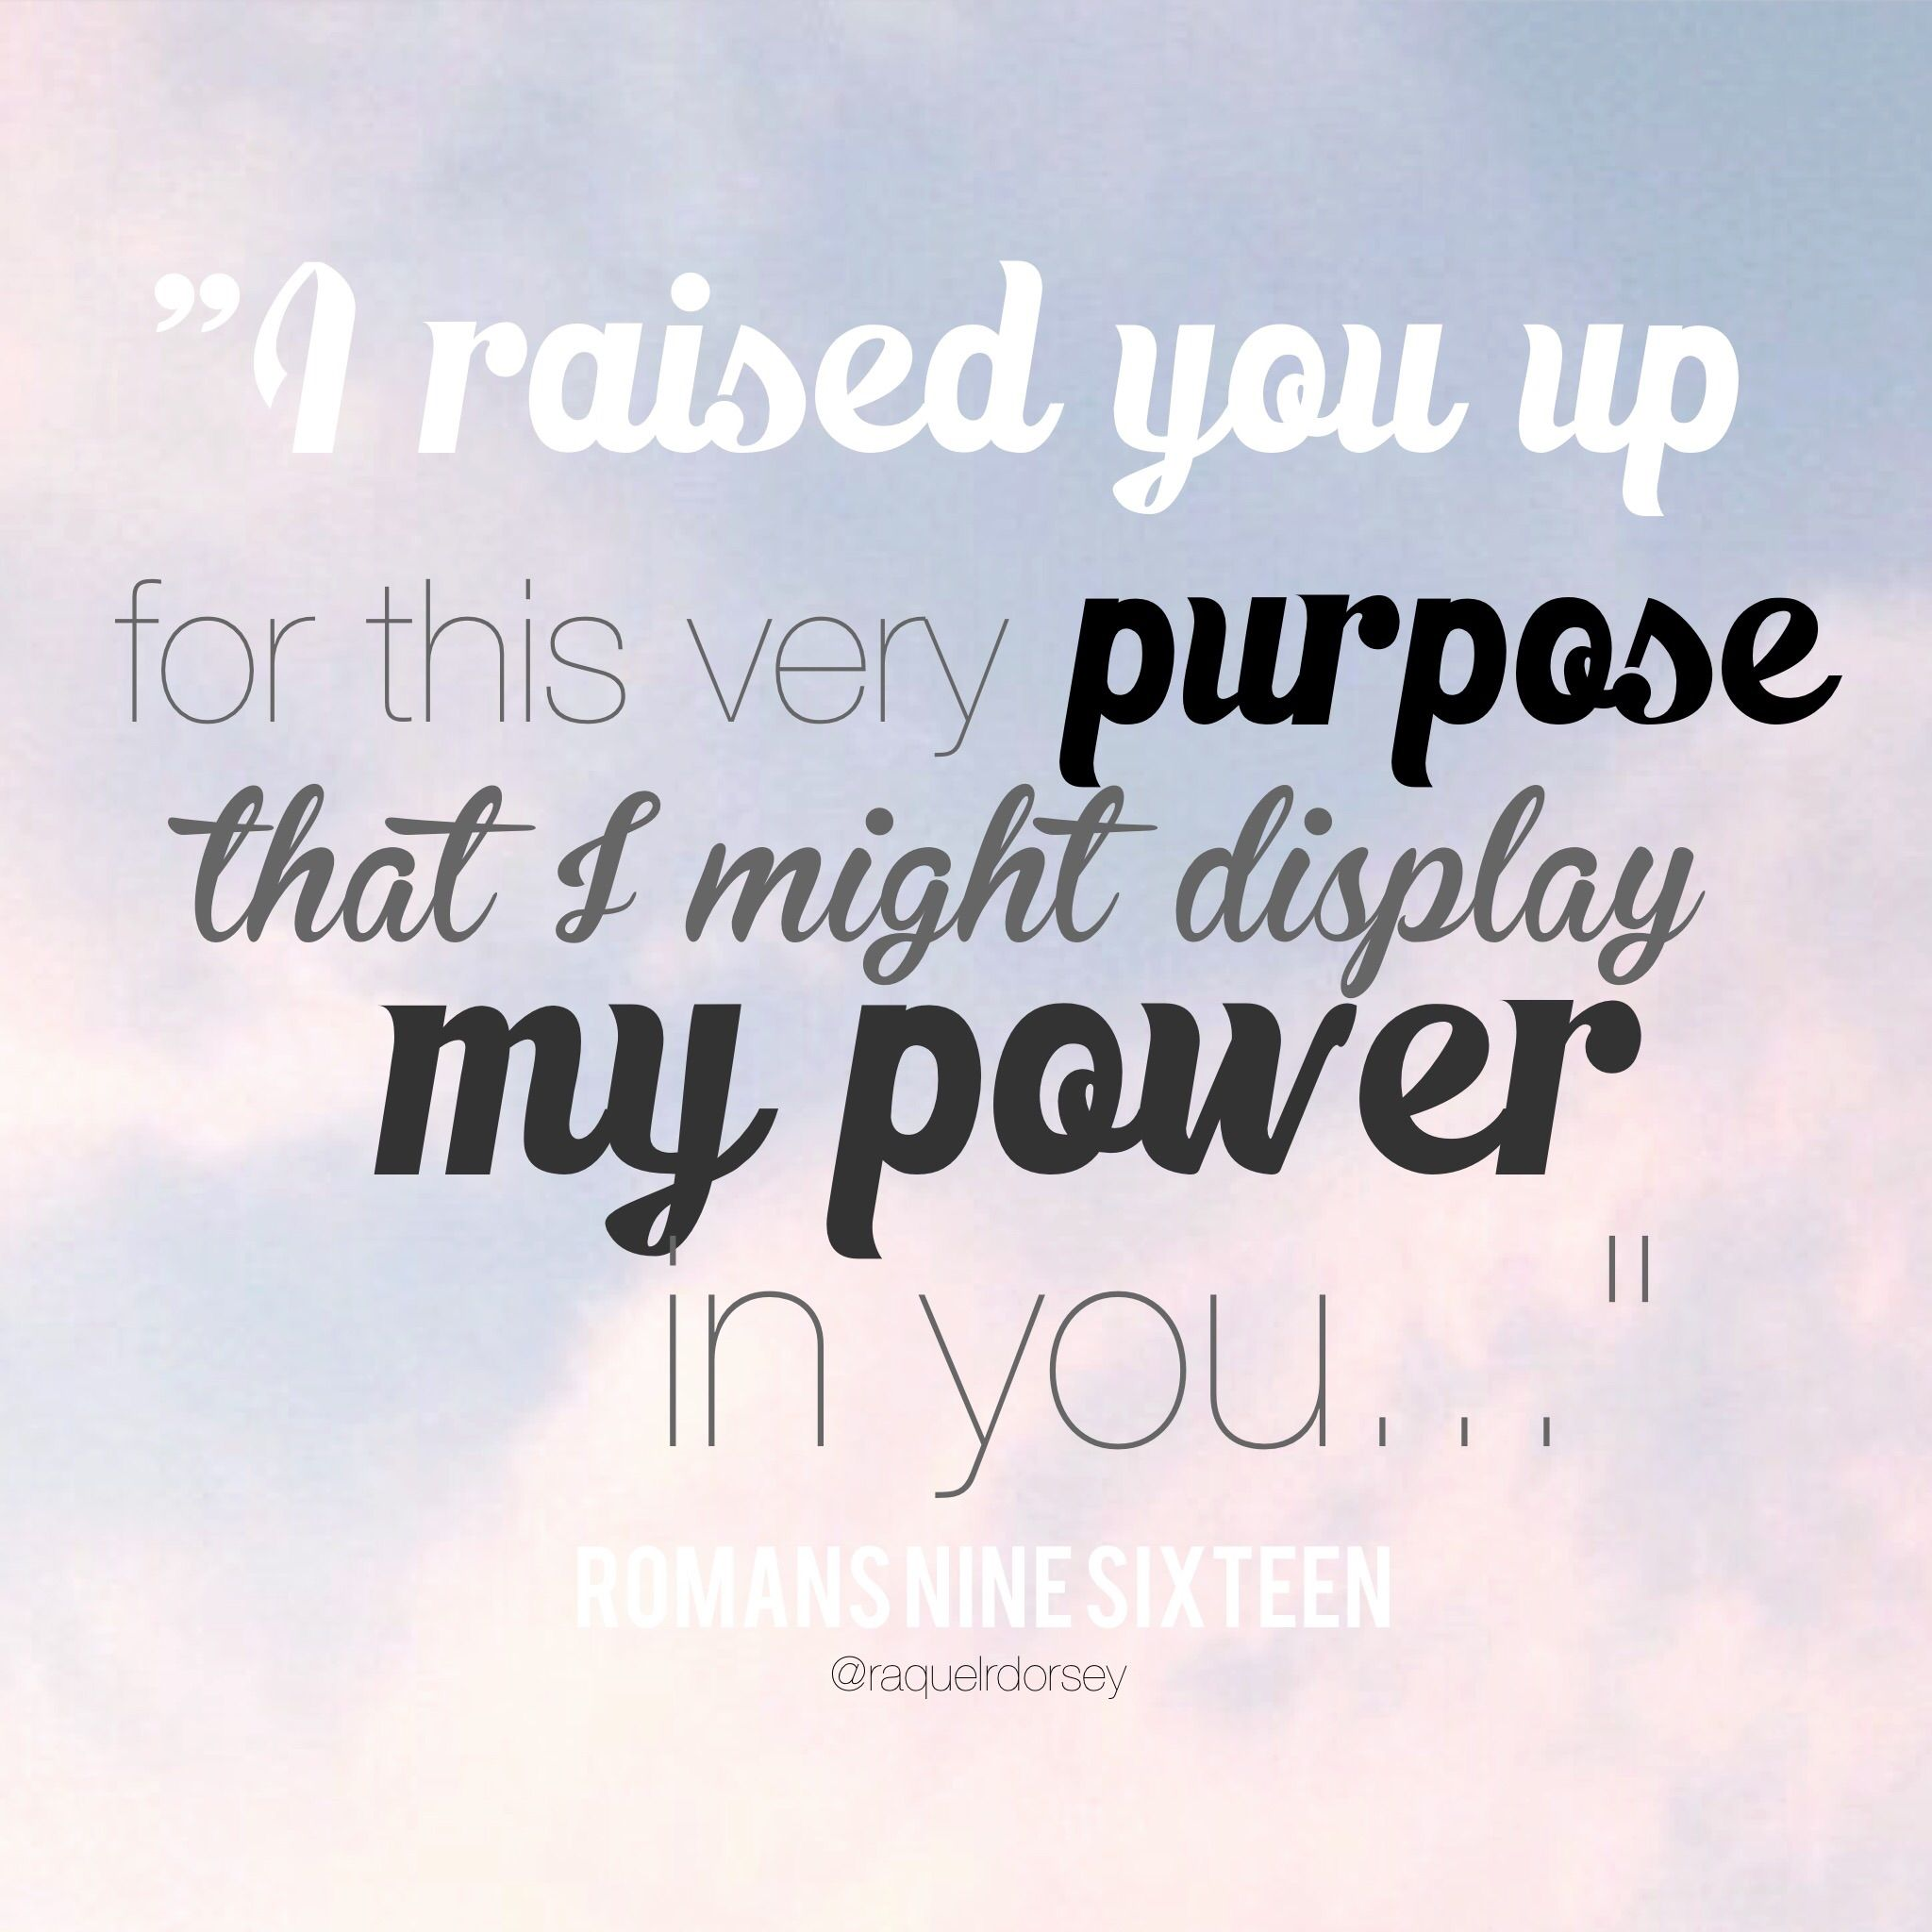 I raised you up for this very purpose, that I might display my power in you...